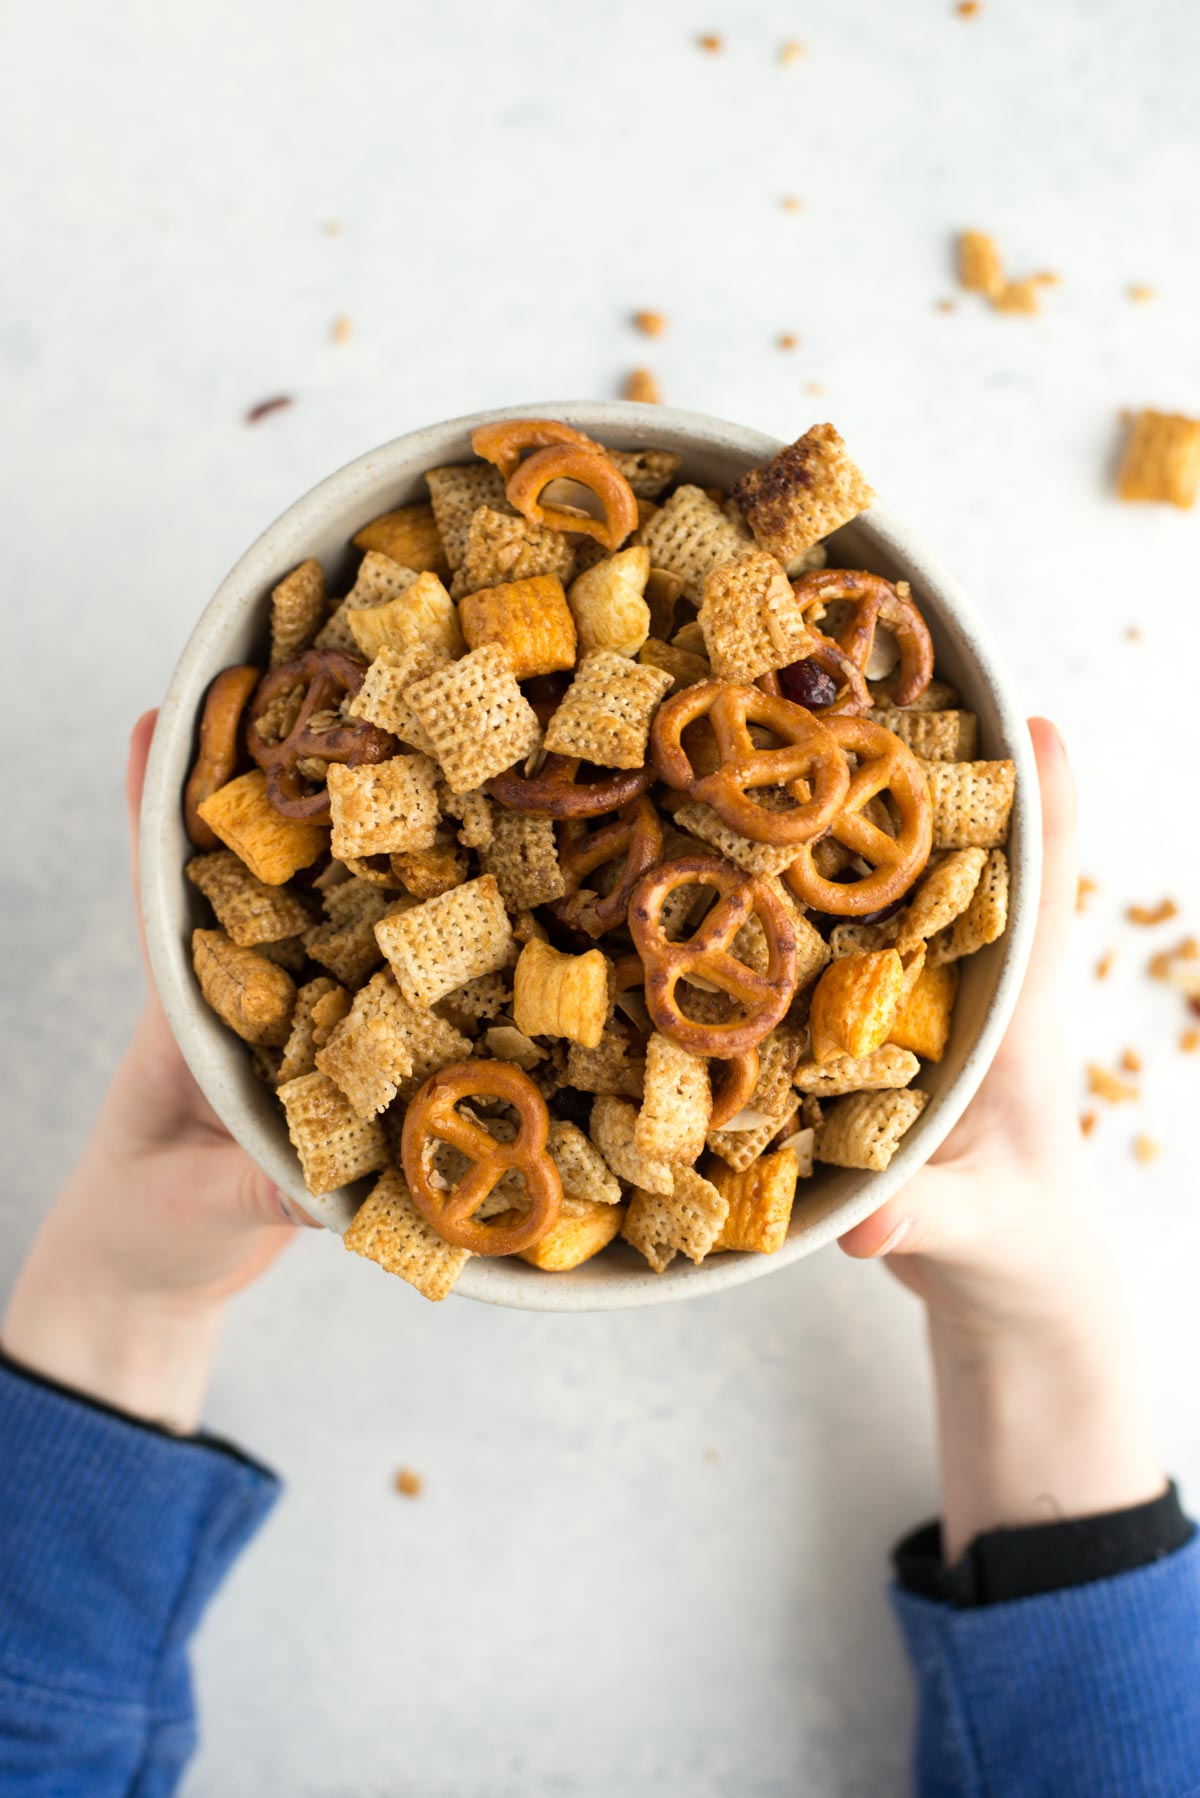 A quick and healthy alternative to traditional sweet chex mix. This maple version has big flavor with over half as much sugar.